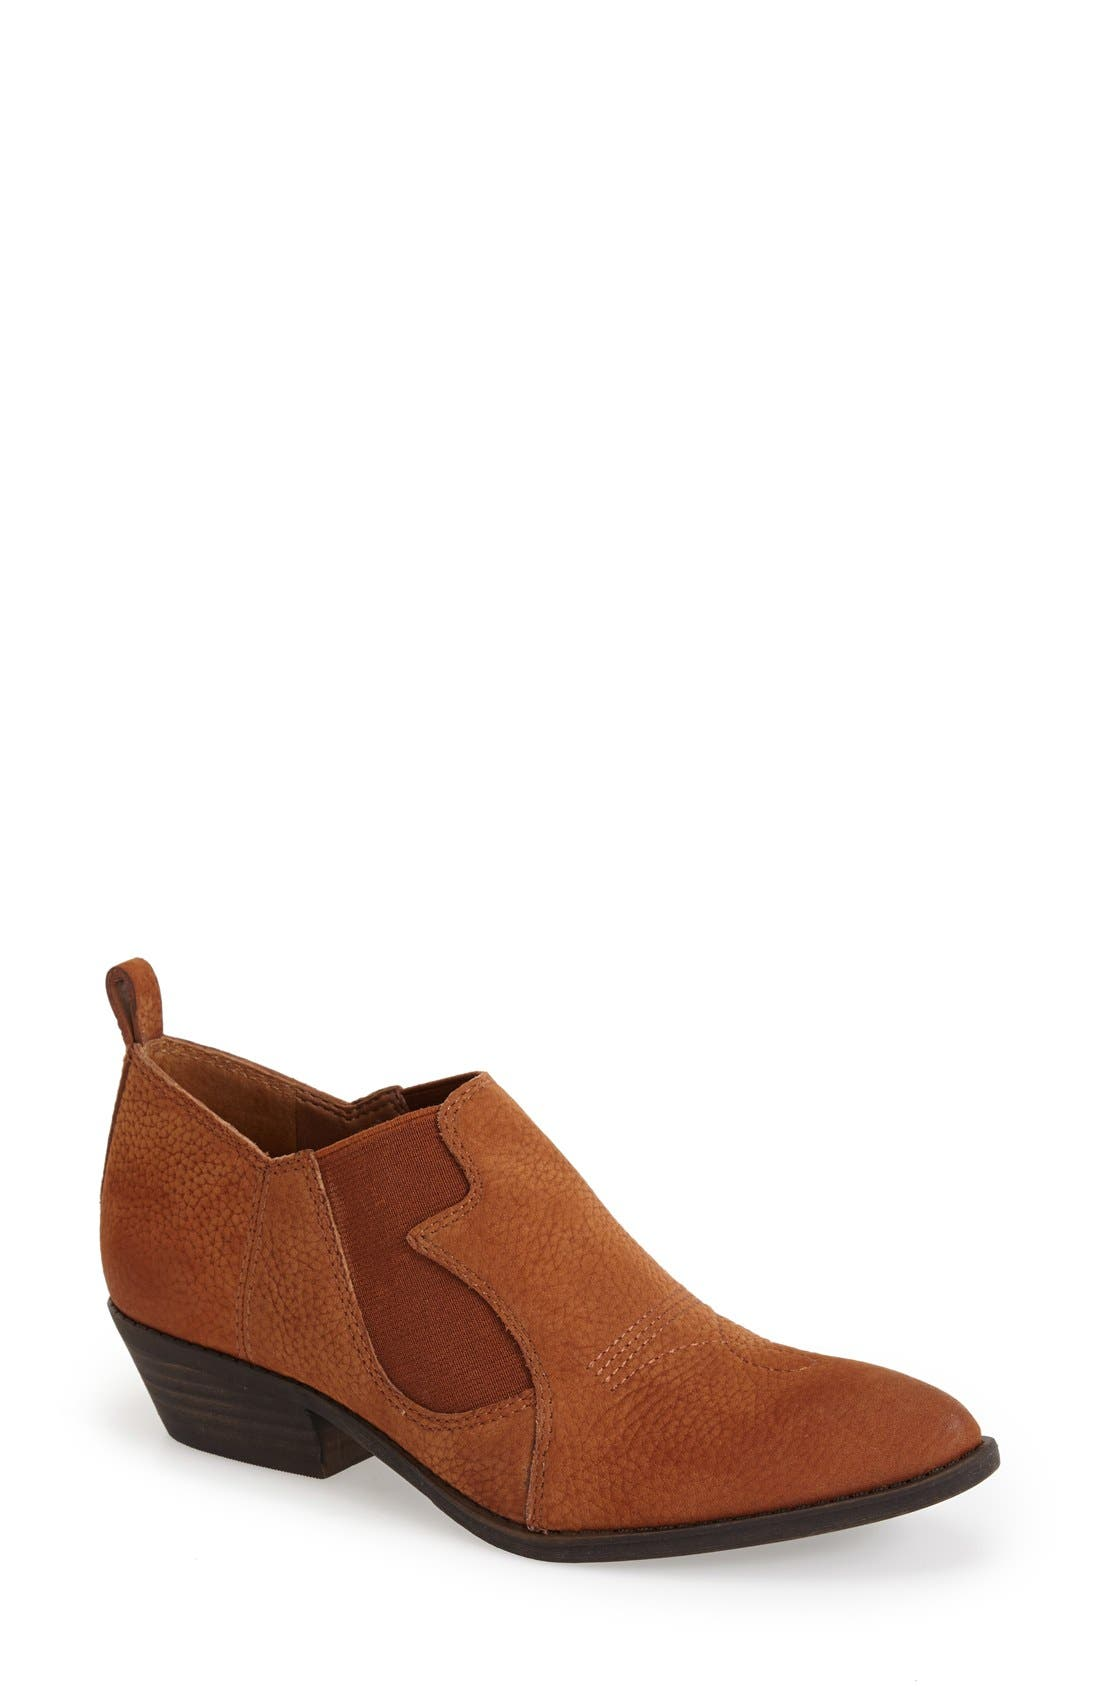 'Joelle' Western Bootie,                         Main,                         color, Chipmunk Nubuck